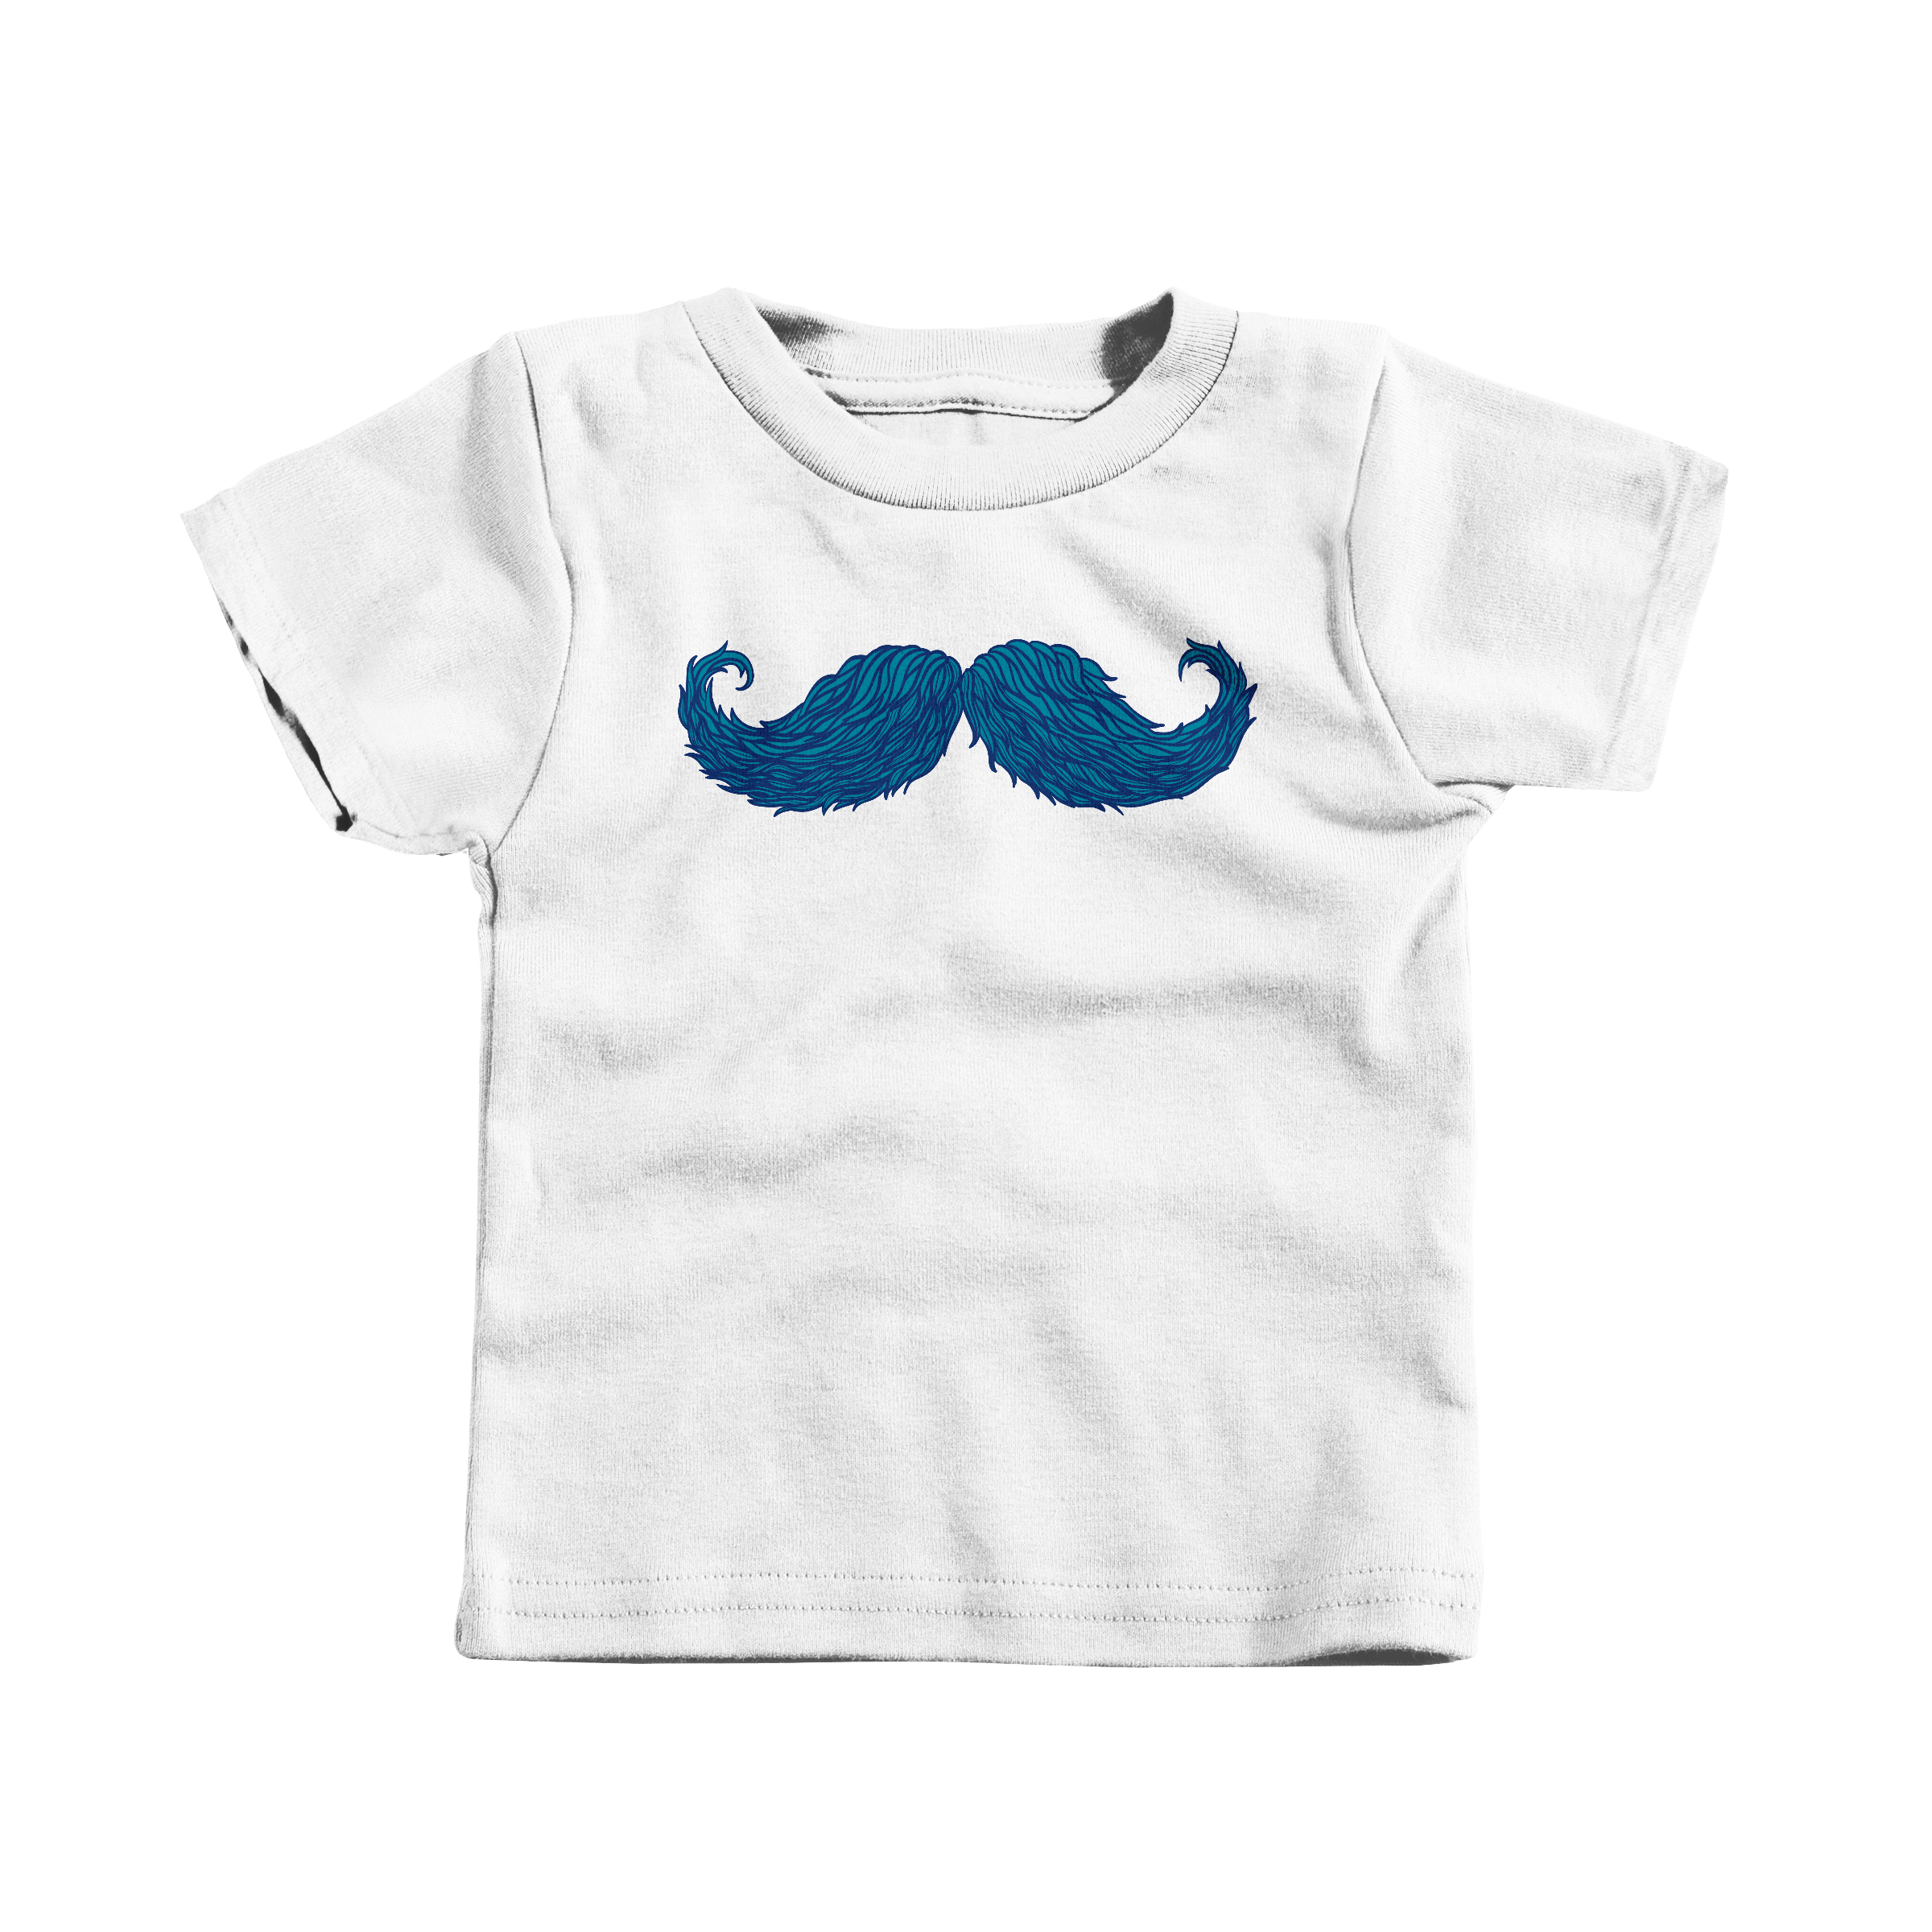 The Cheering Up Mustache